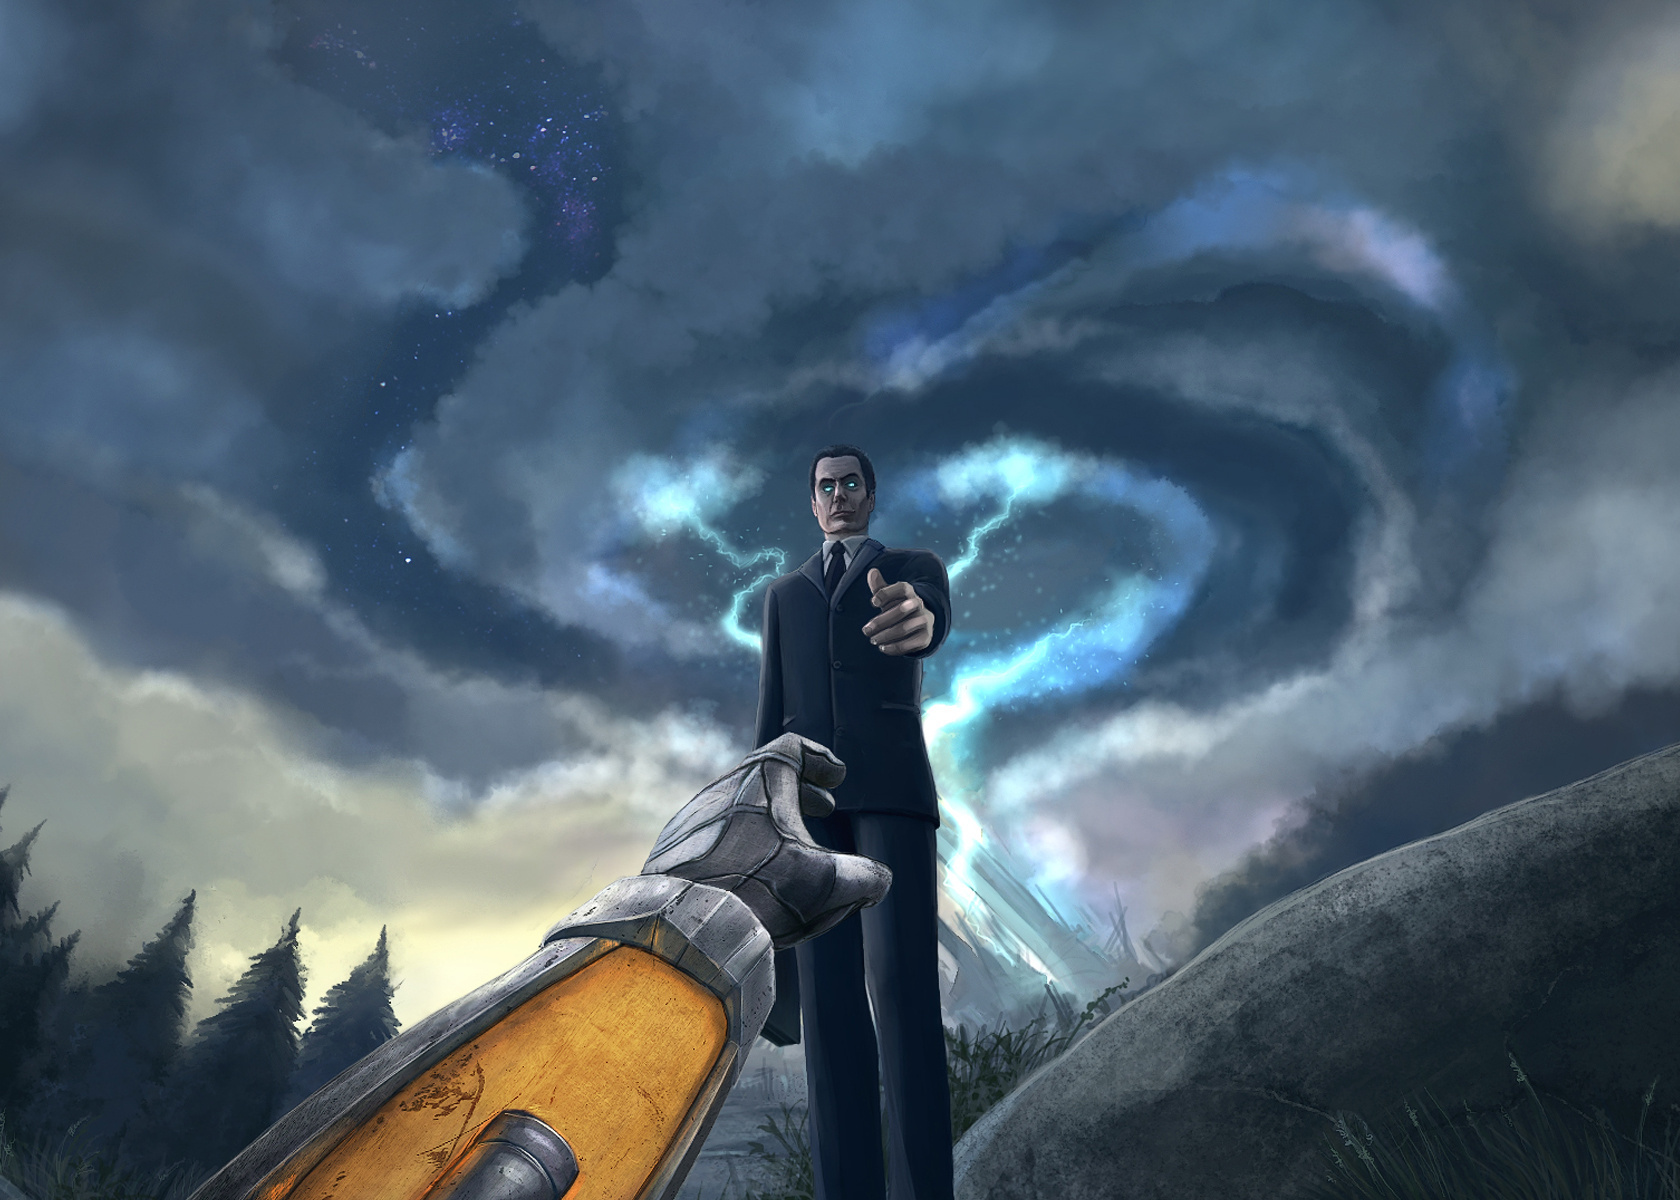 Half Life 2 Wallpaper and Background Image 1680x1200 ID418861 1680x1200